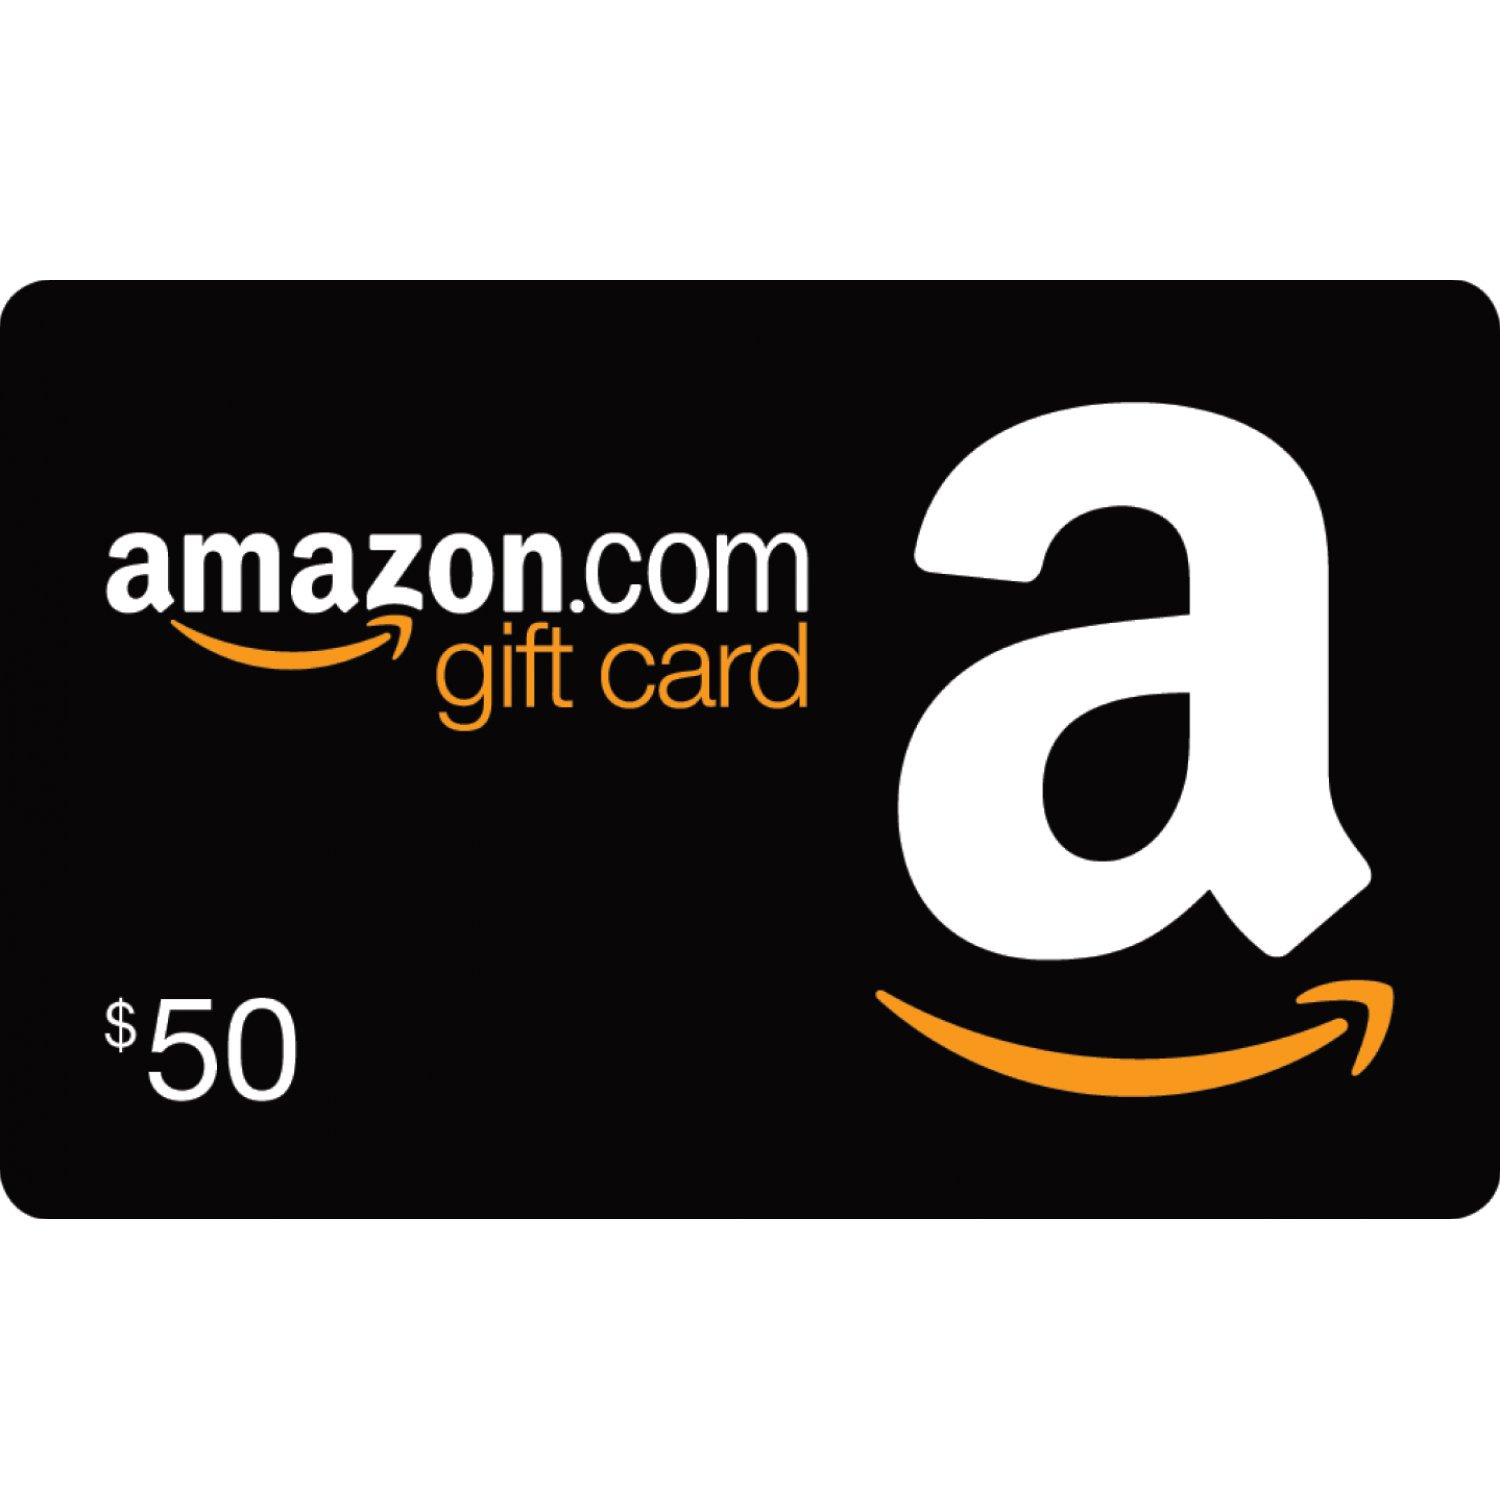 Amazon $50 gift card photo